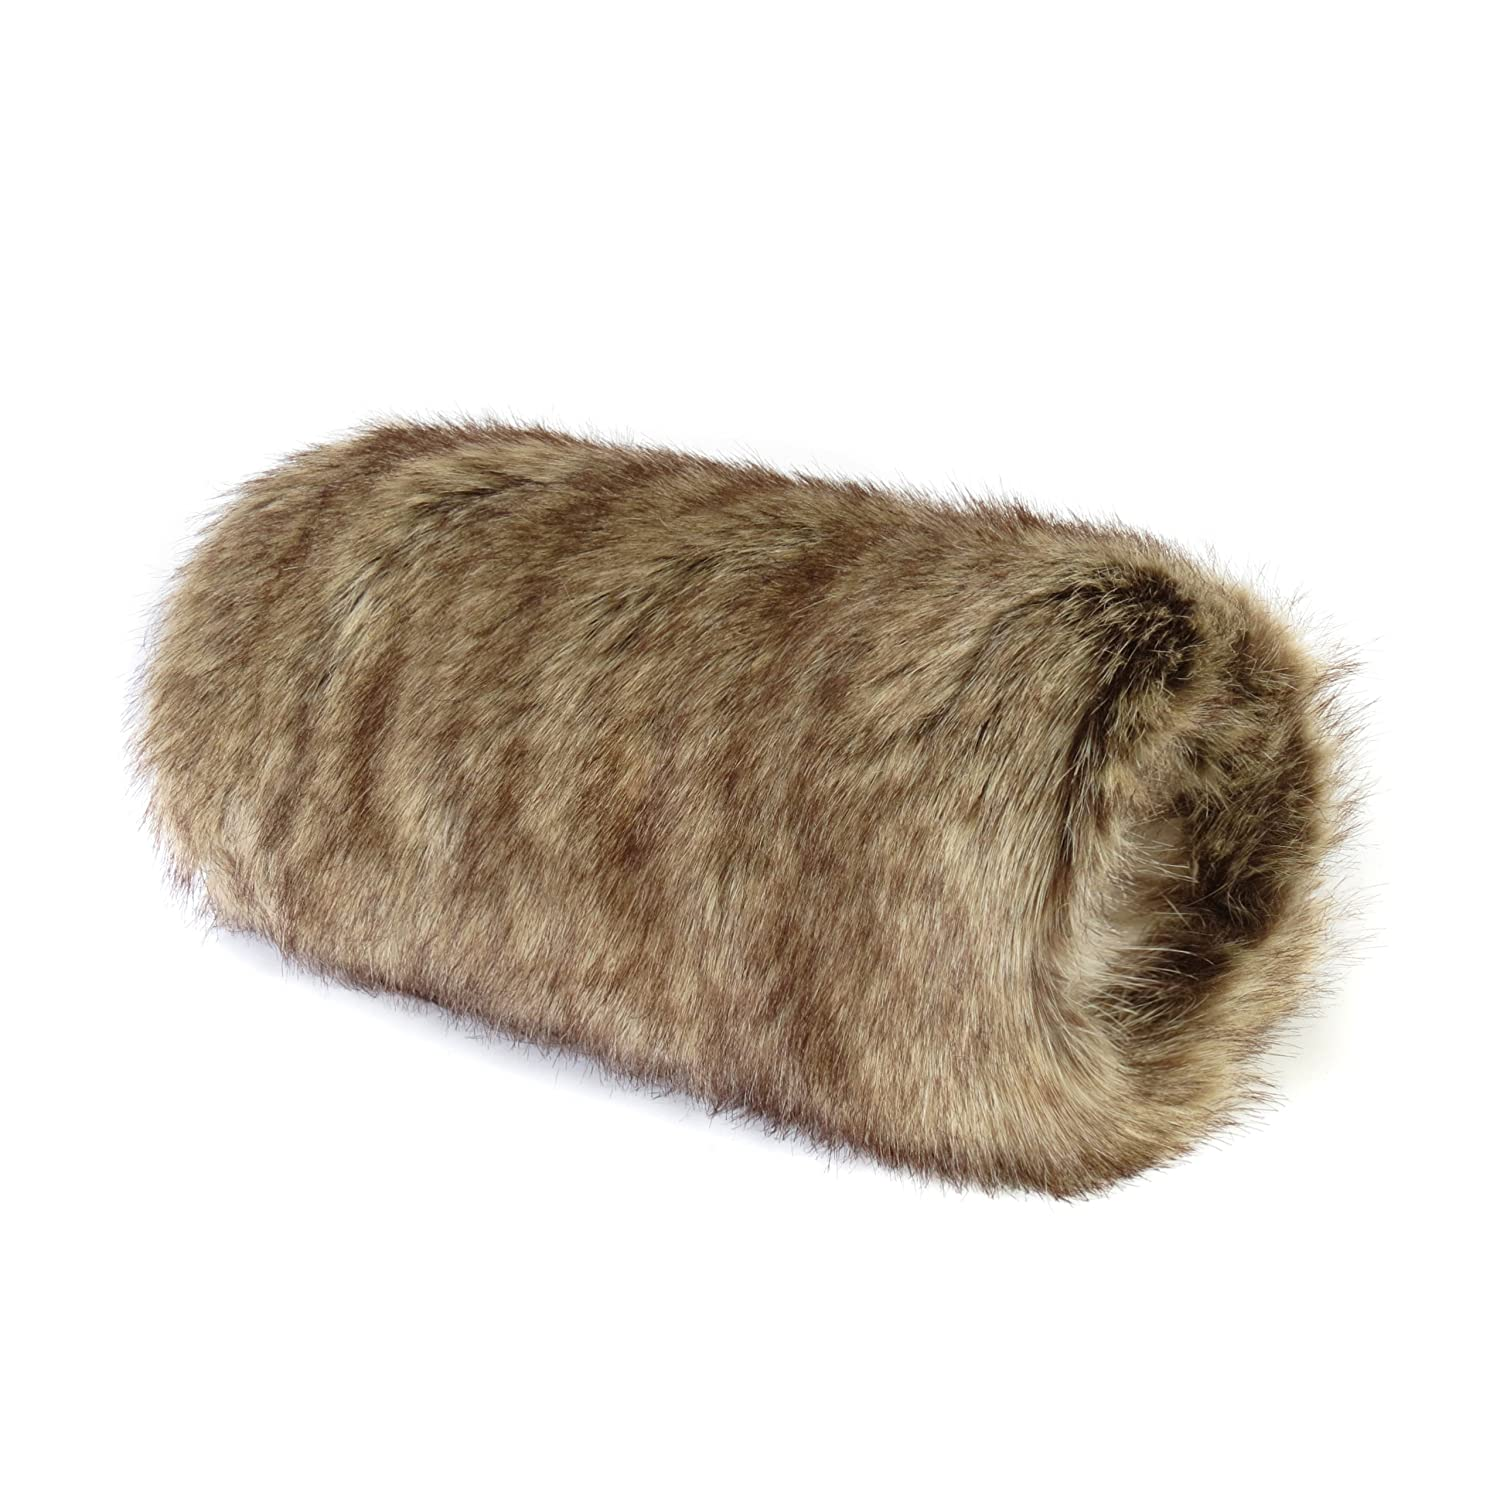 Luxury Faux Fur Muff - Mitten - Glove - choice of fabrics